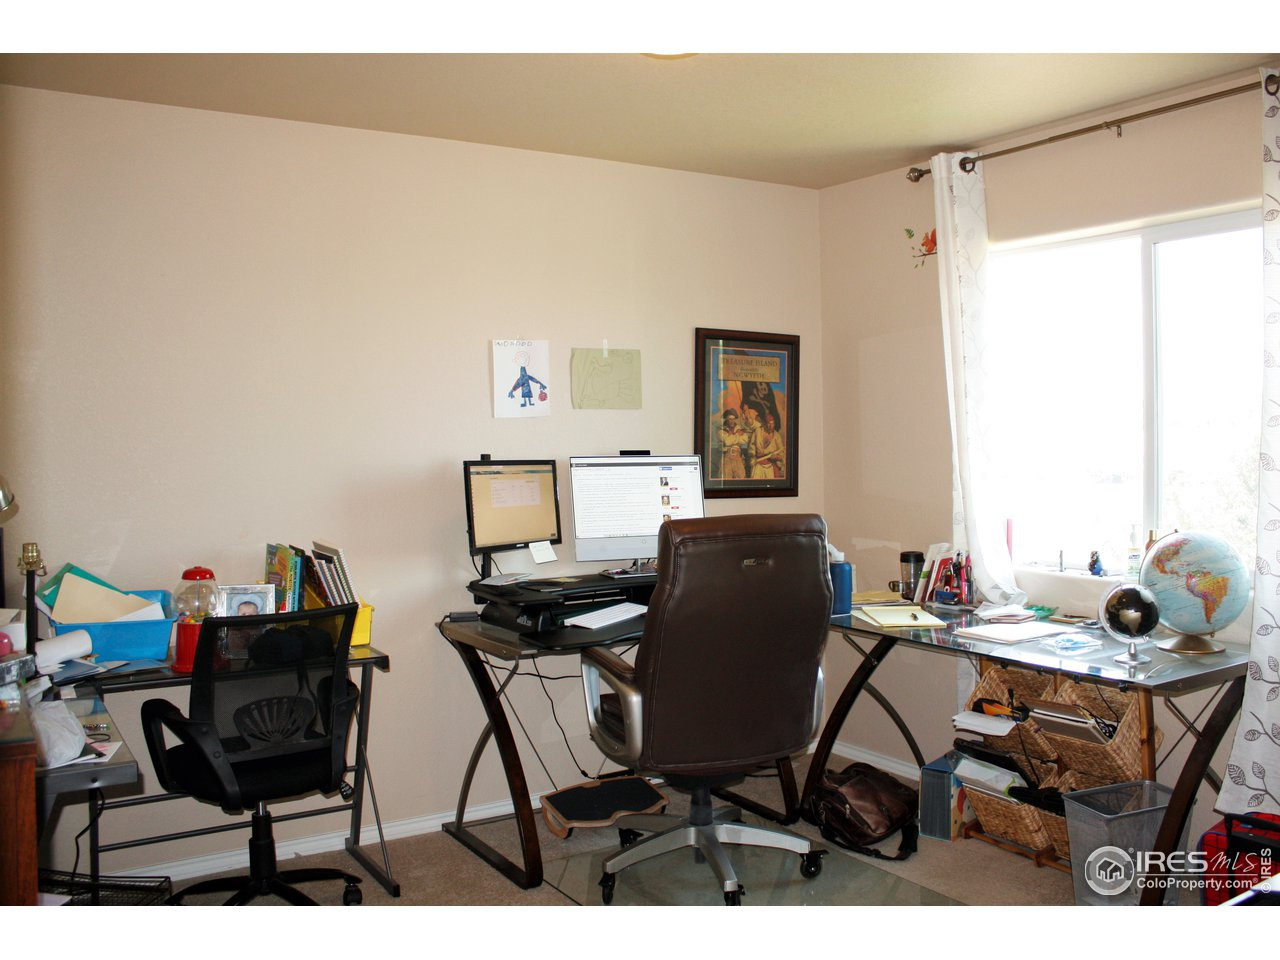 2nd bedroom as an office